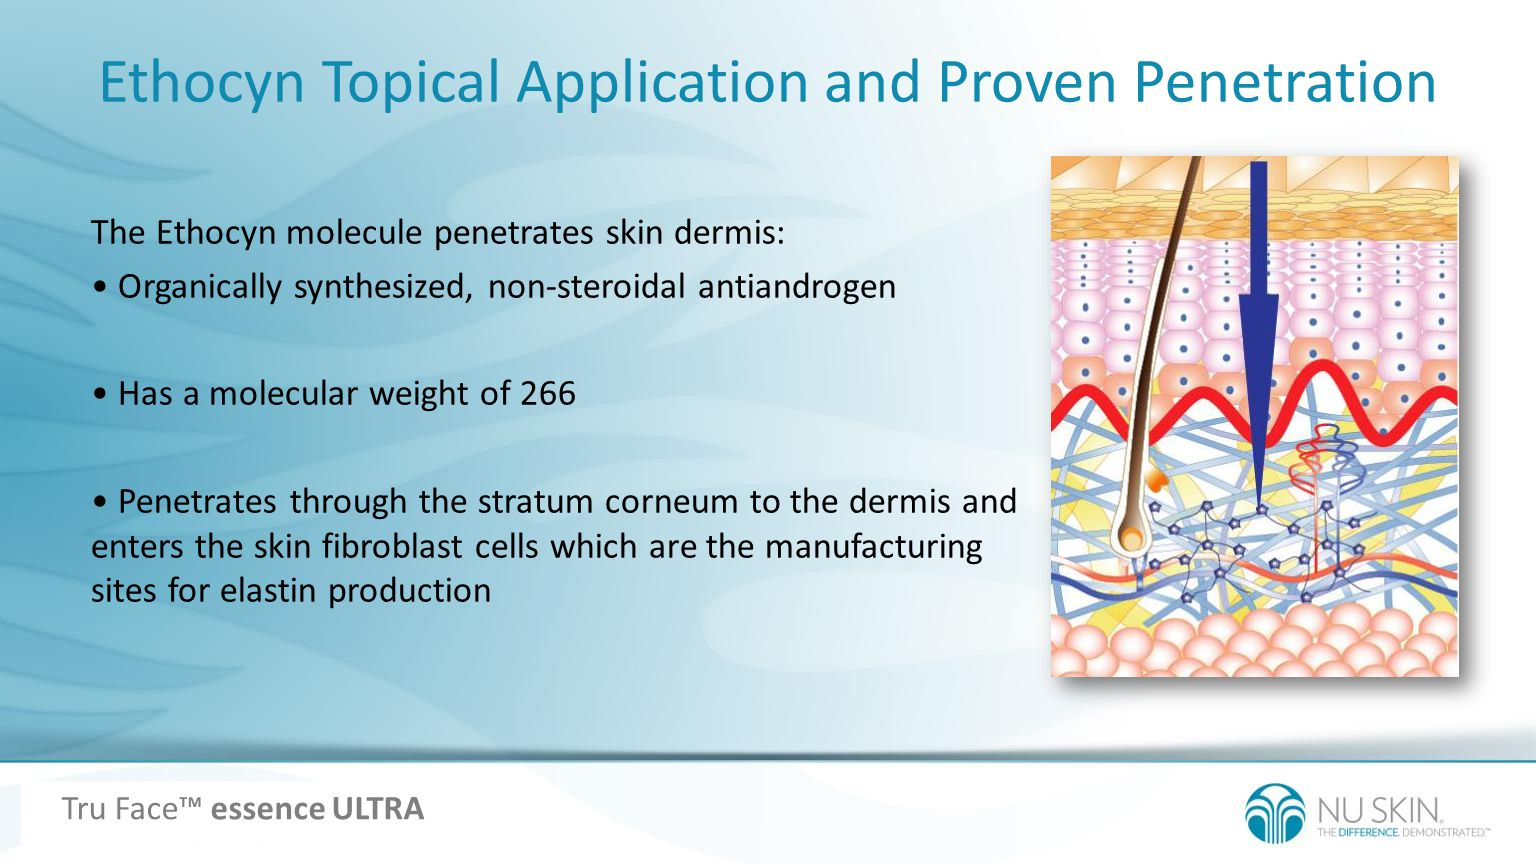 Ethocyn Topical Application and Proven Penetration